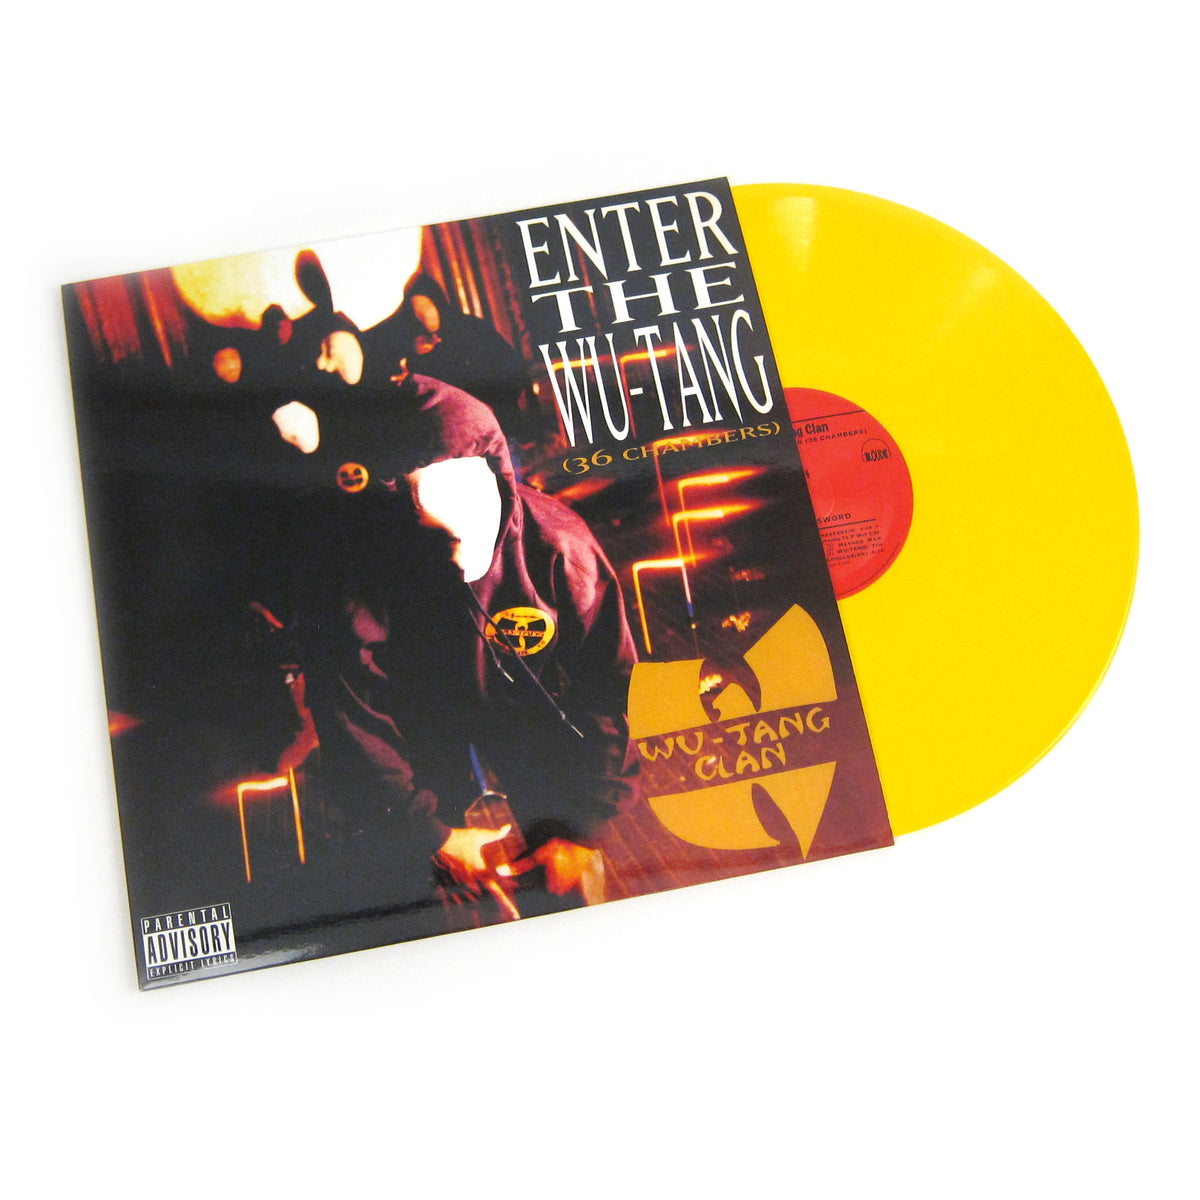 Wu-Tang Clan: Enter The Wu-Tang (36 Chambers) (Colored Vinyl) Vinyl LP